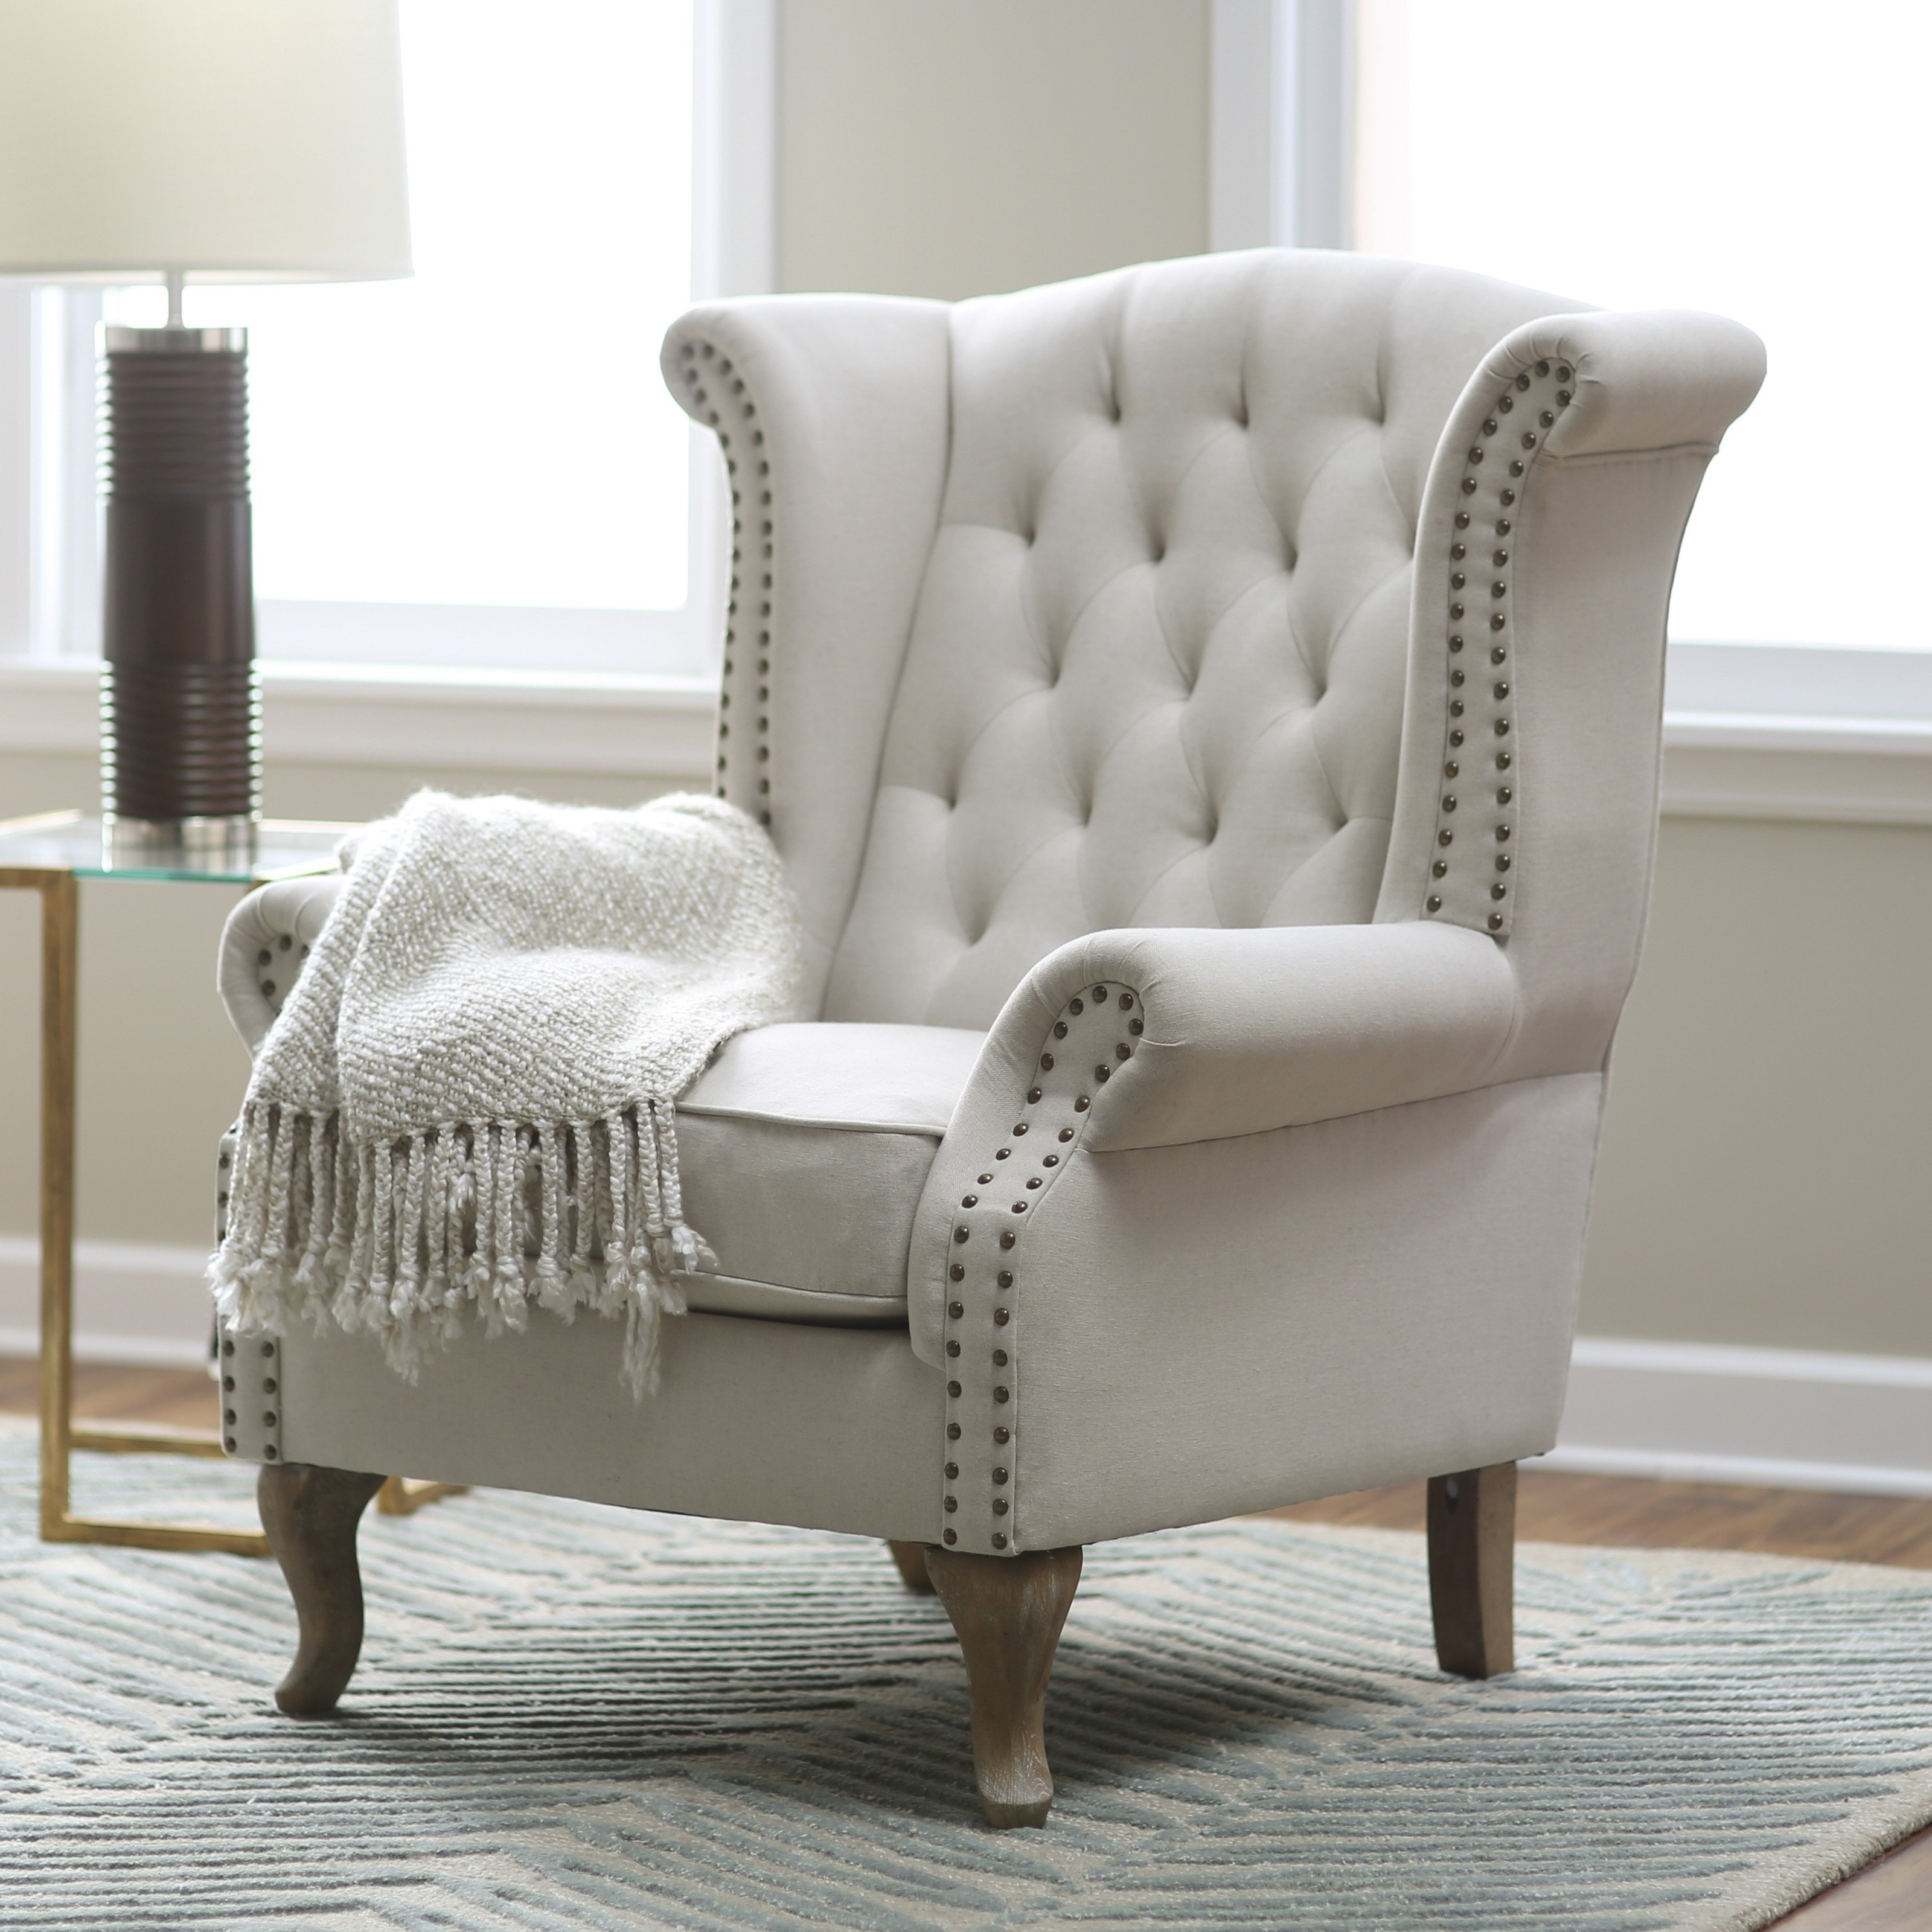 Comfortable Living Room Furniture New fortable Living Room Chairs Design – Accent Chairs with Arms Throughout fortable Living